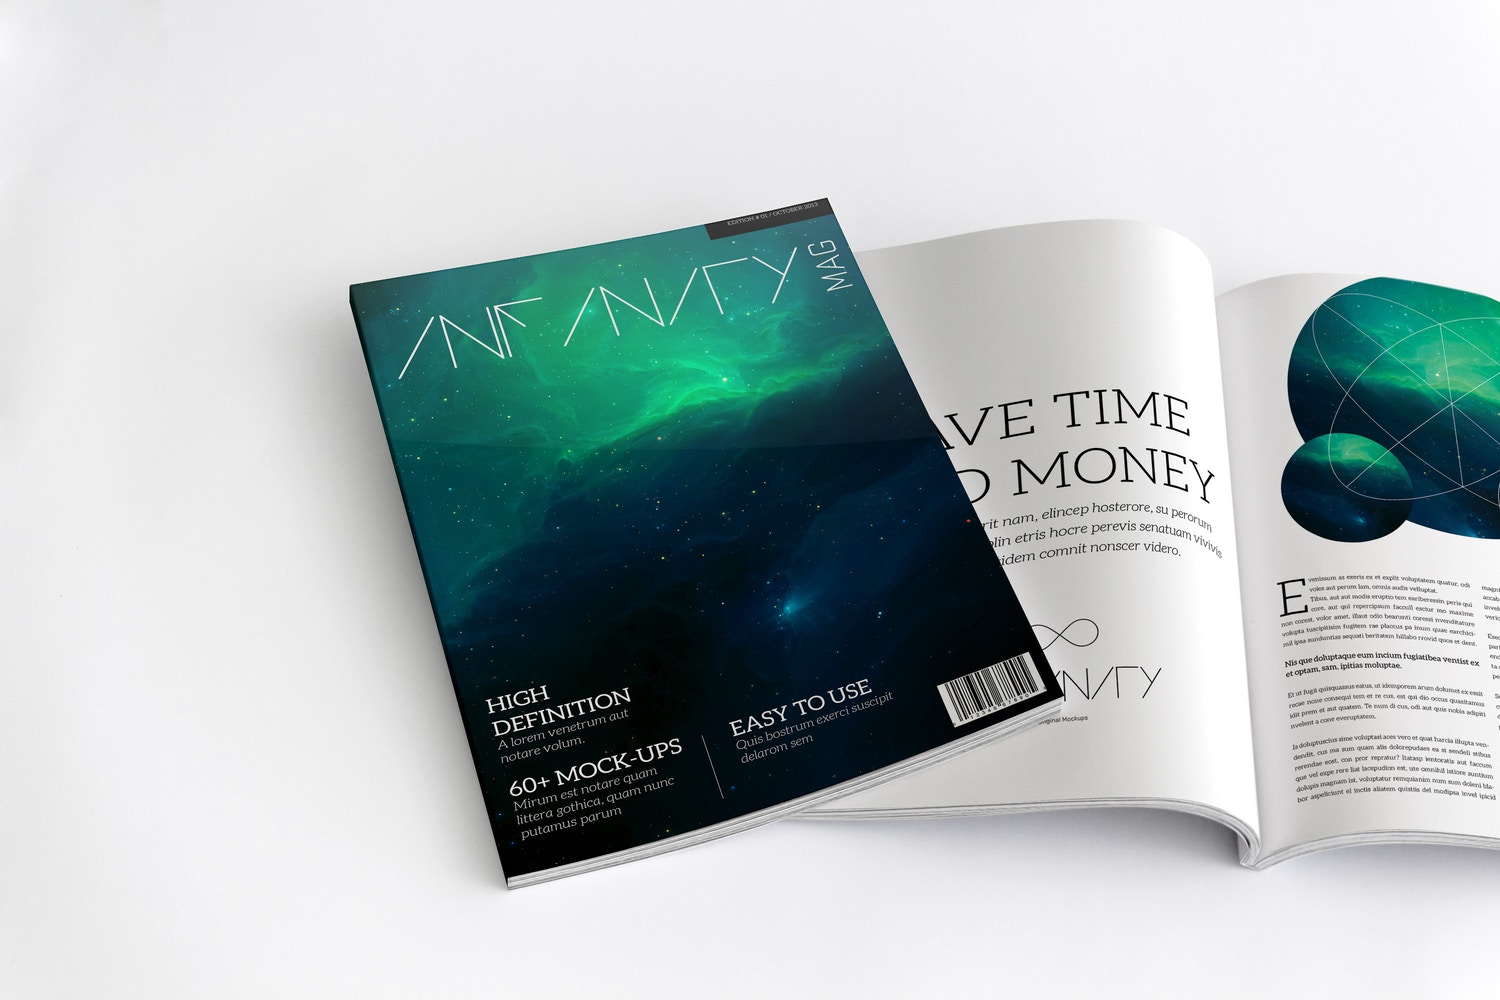 A4 Magazine Mockup for Cover & Spread Page 02 by Original Mockups on Original Mockups